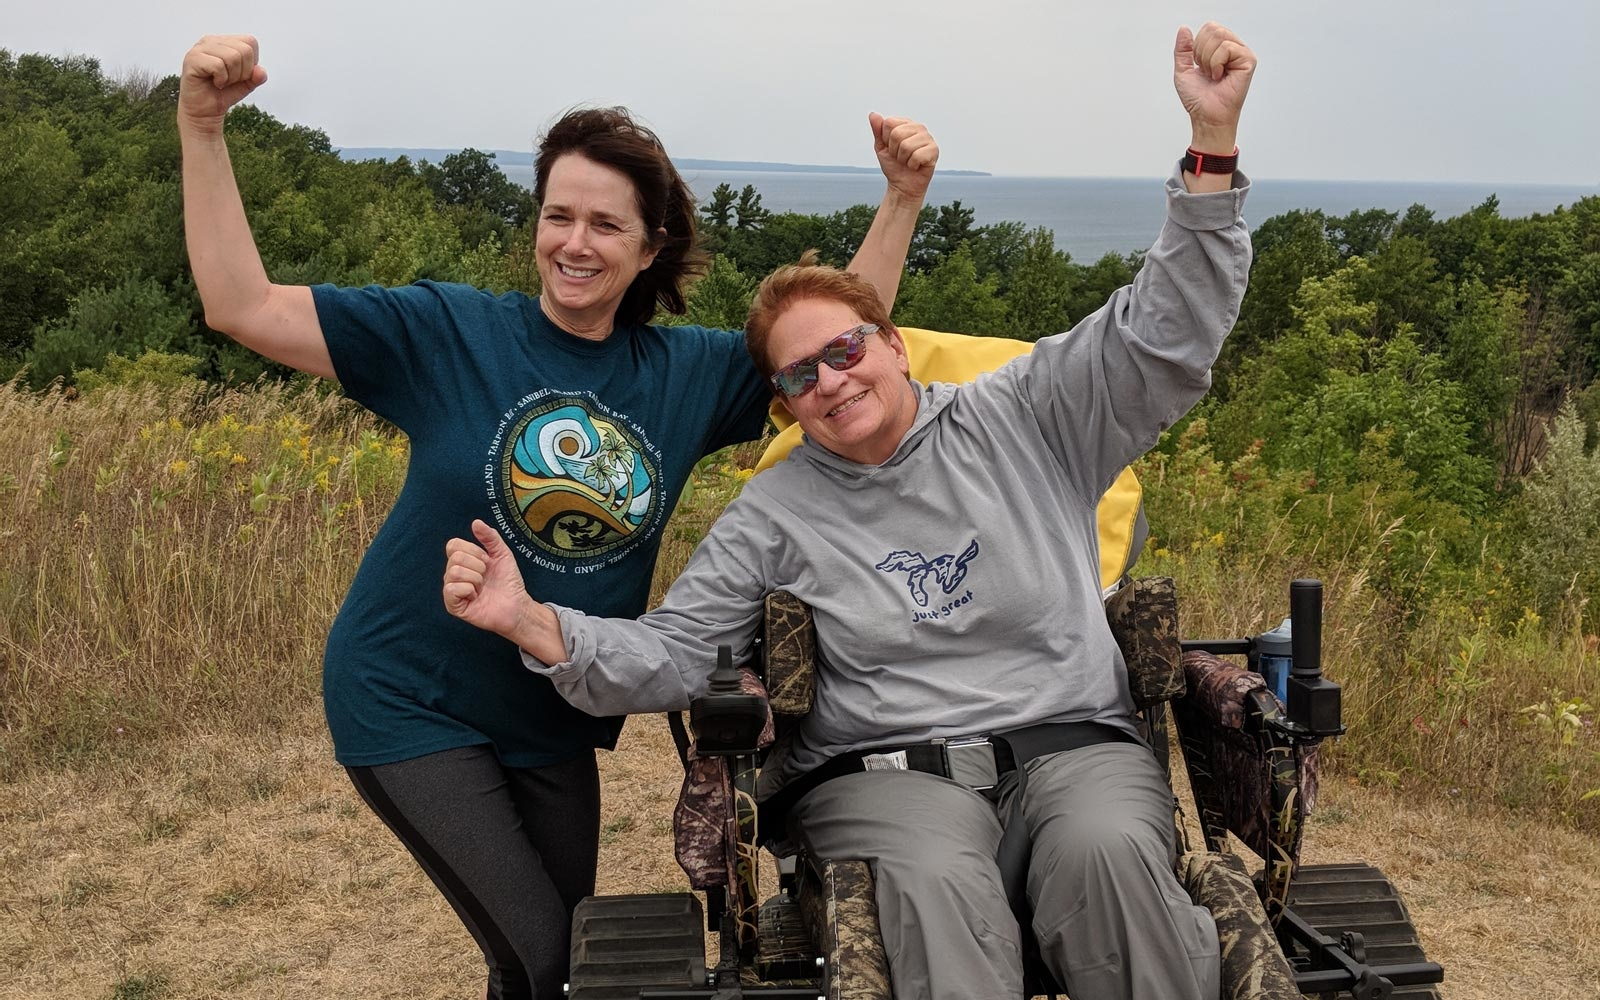 Track chair program at Sleeping Bear Dunes National Lakeshore